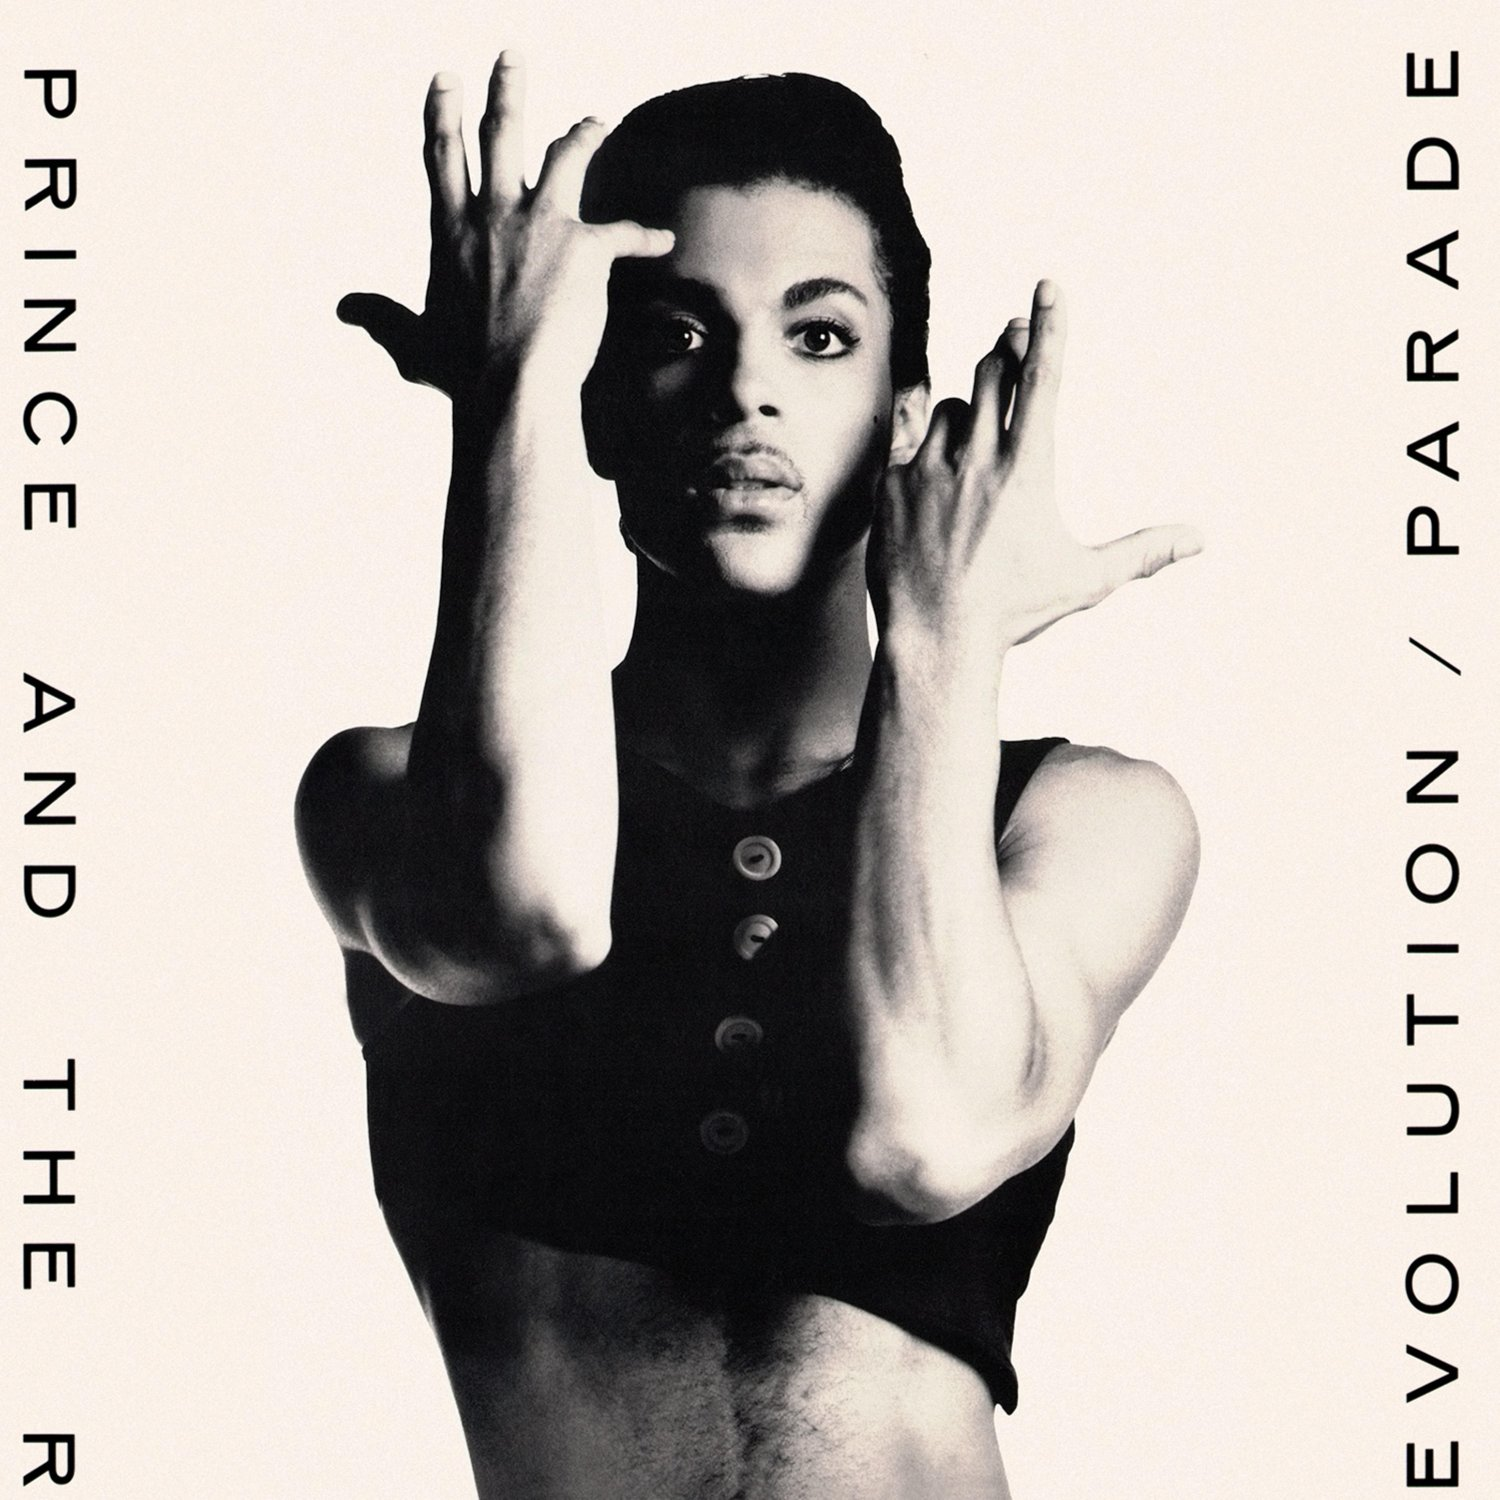 PRINCE Parade BANNER Huge 4X4 Ft Fabric Poster Tapestry Flag Print album cover art